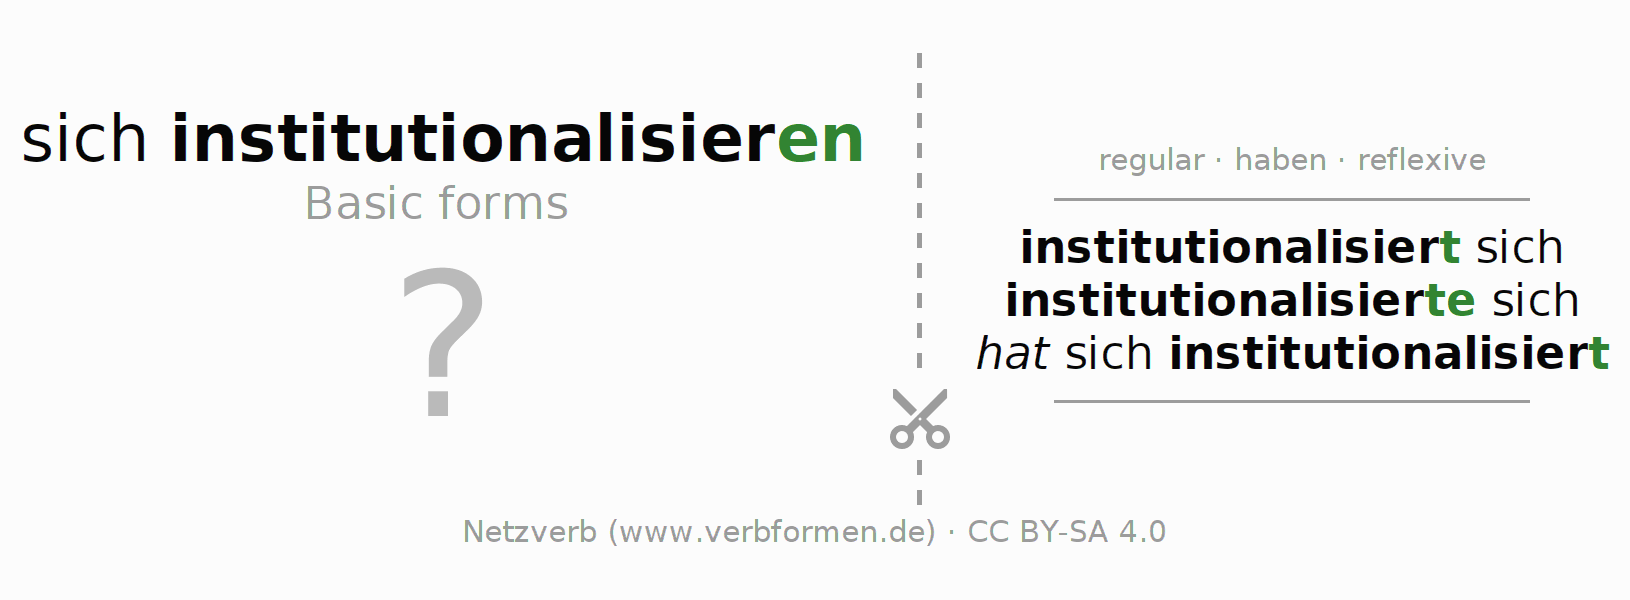 Flash cards for the conjugation of the verb sich institutionalisieren